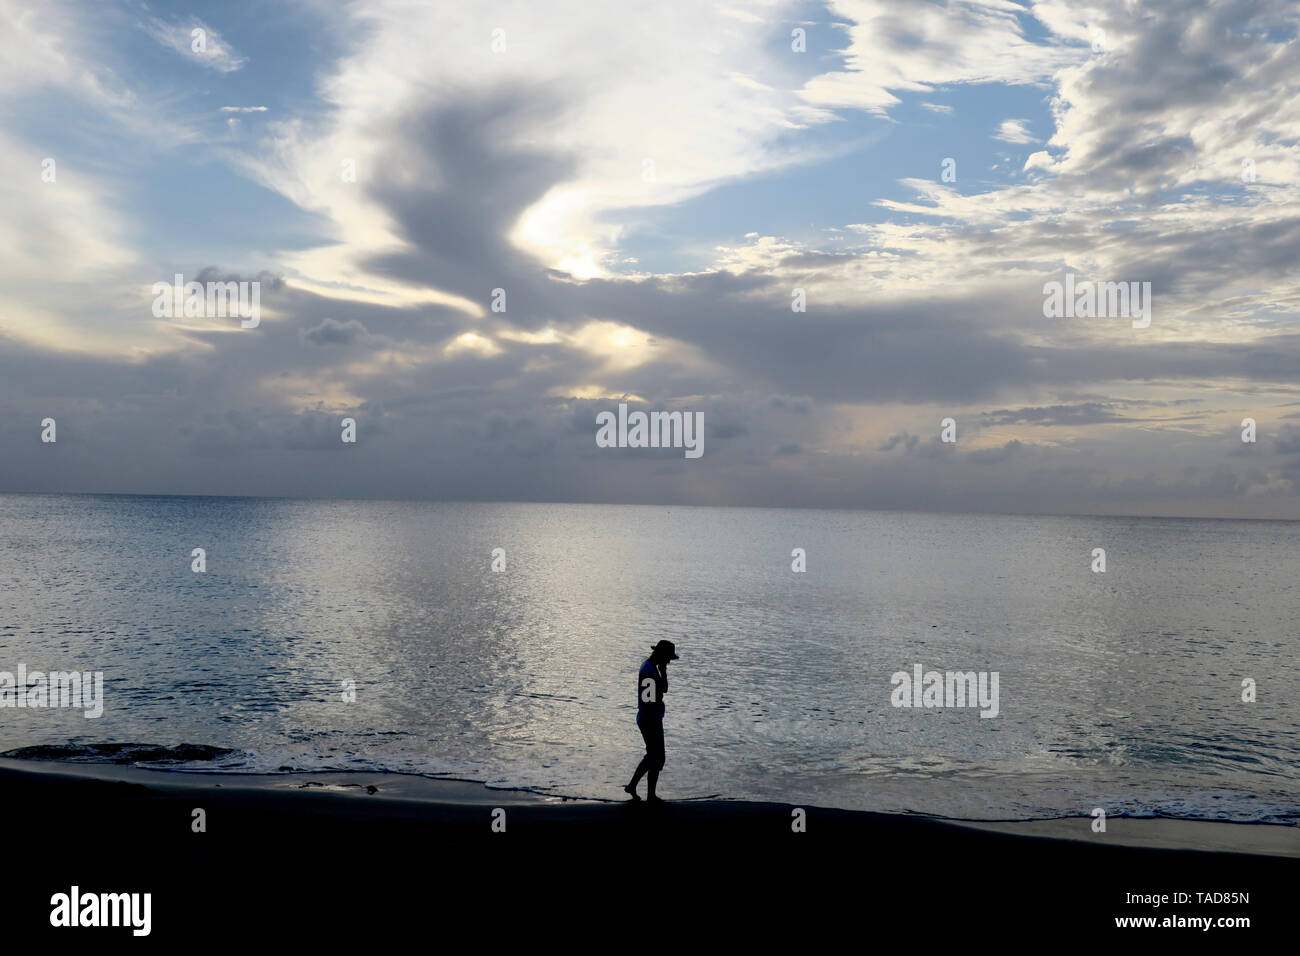 Single person walking on the beach at sunset - Stock Image